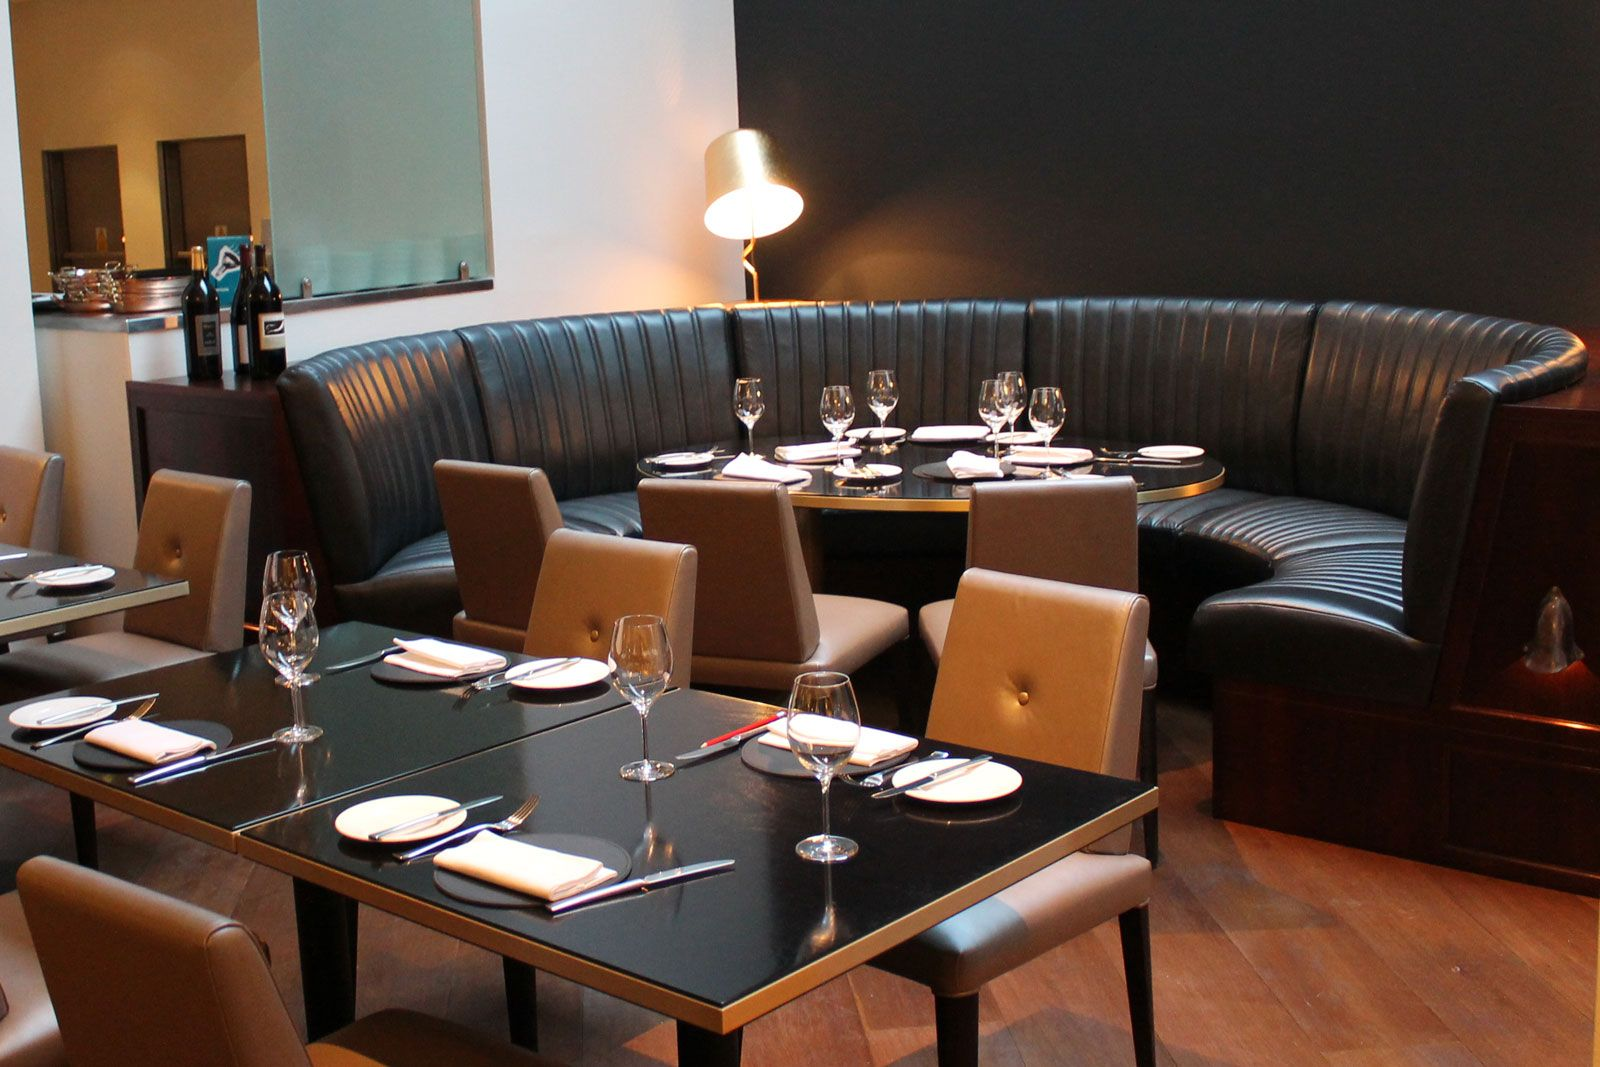 Restaurant Furniture London Restaurant Furniture Furniture Booth Seating